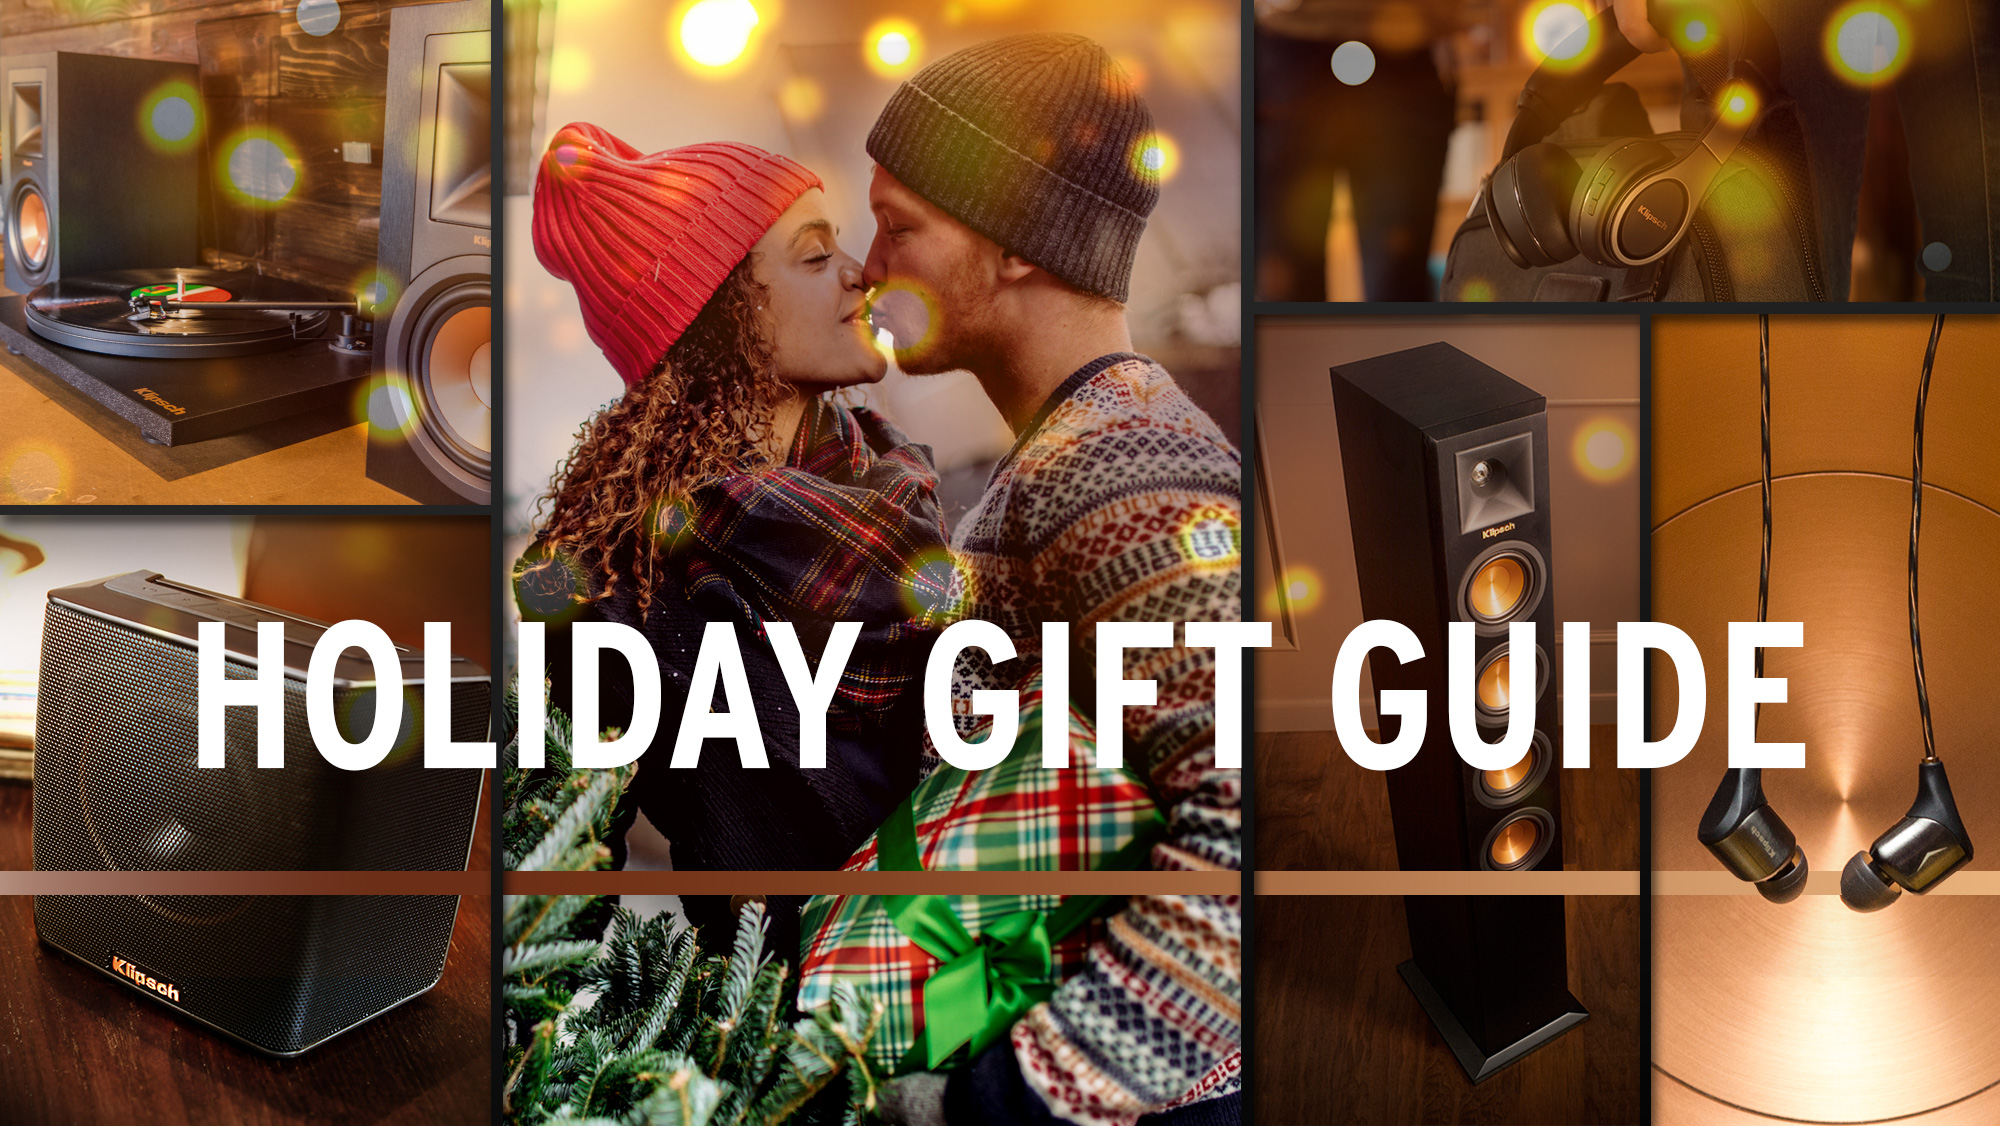 Klipsch Holiday Gift Guide Hero A